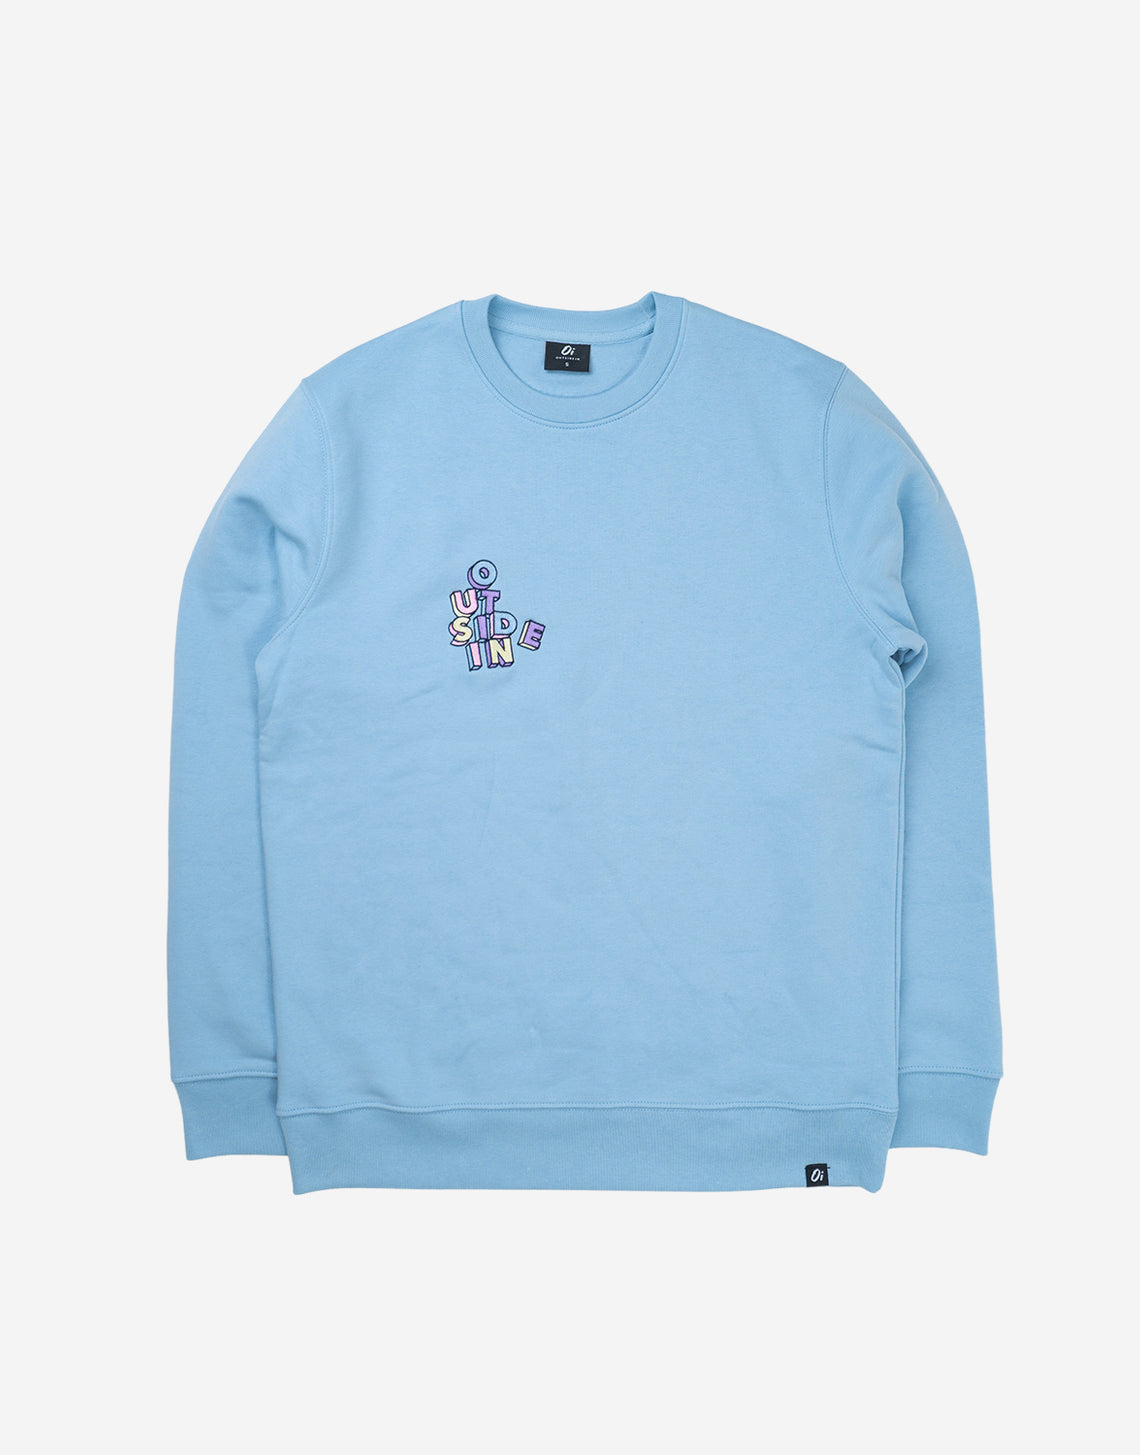 Blue Building Blocks Sweater - OutsideIn